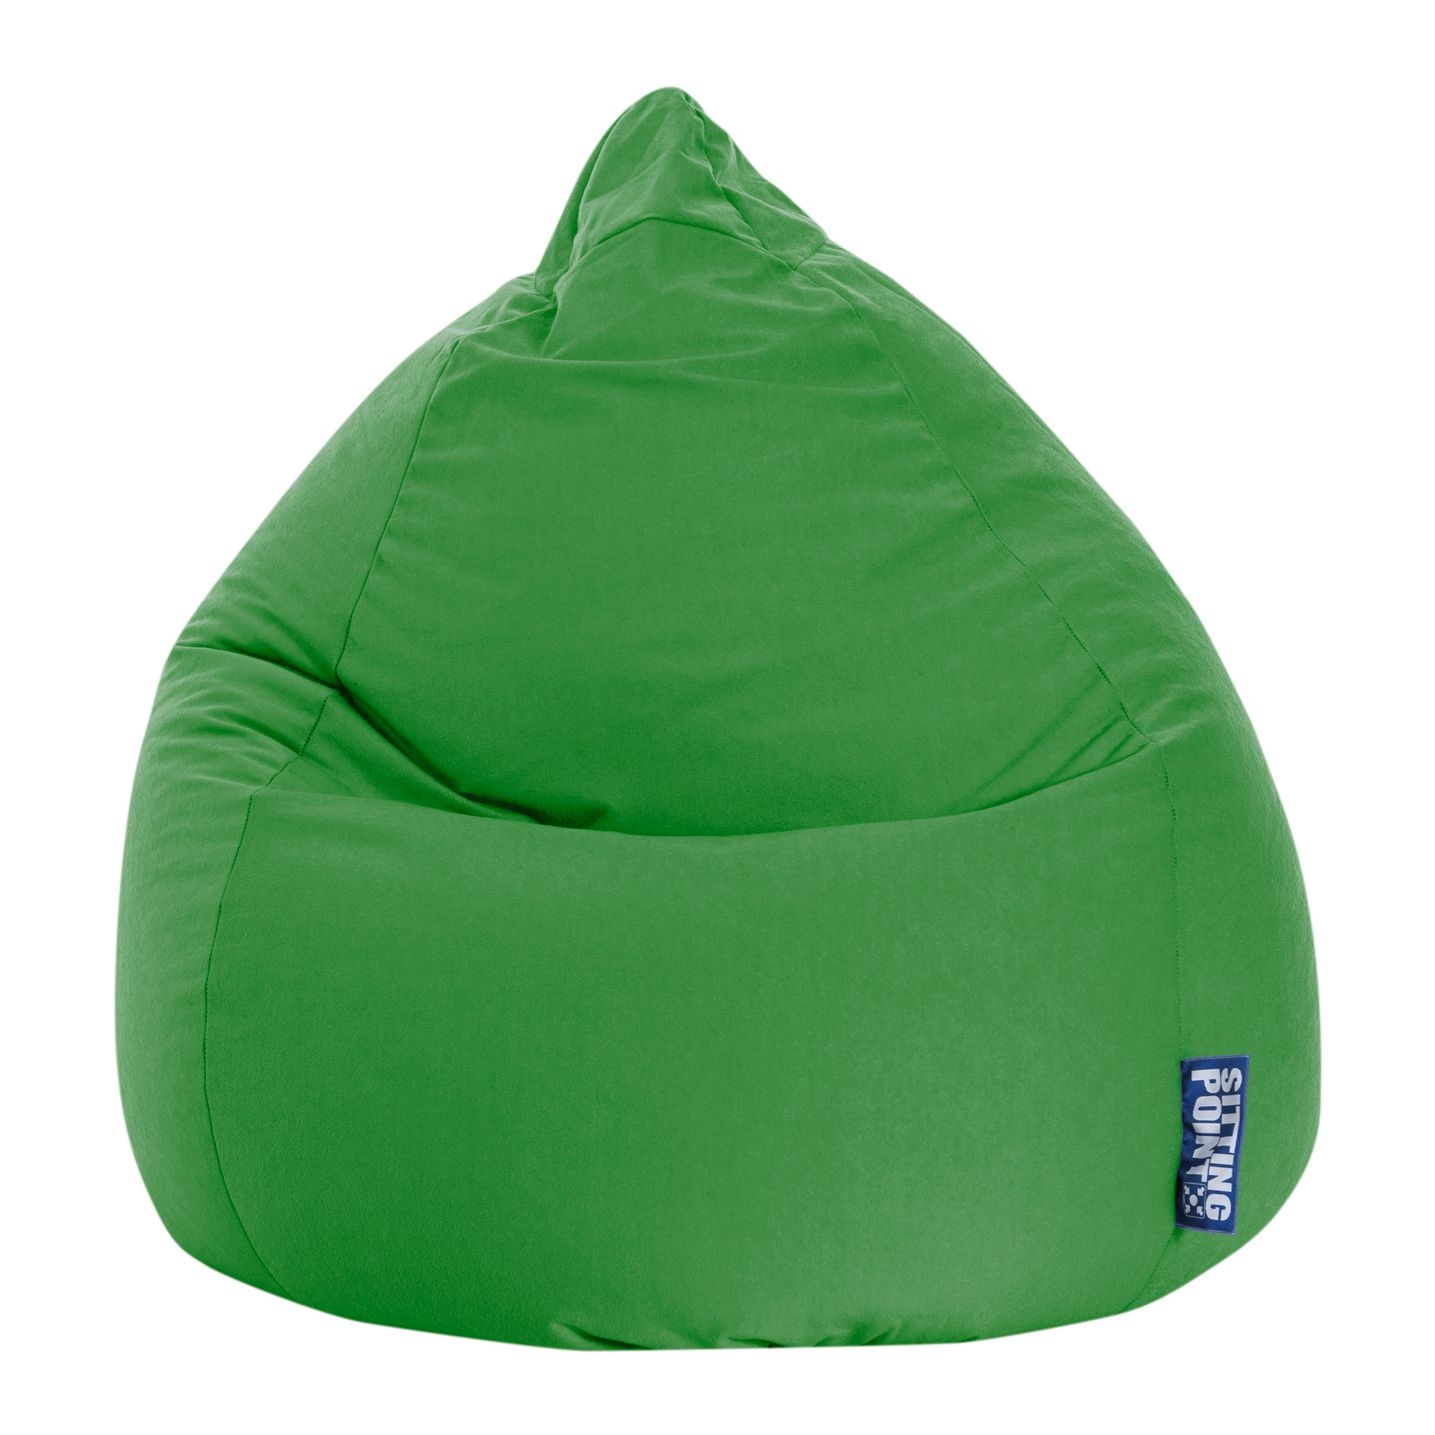 Sitzsack Easy XL - Microfaser - Grün, SITTING POINT